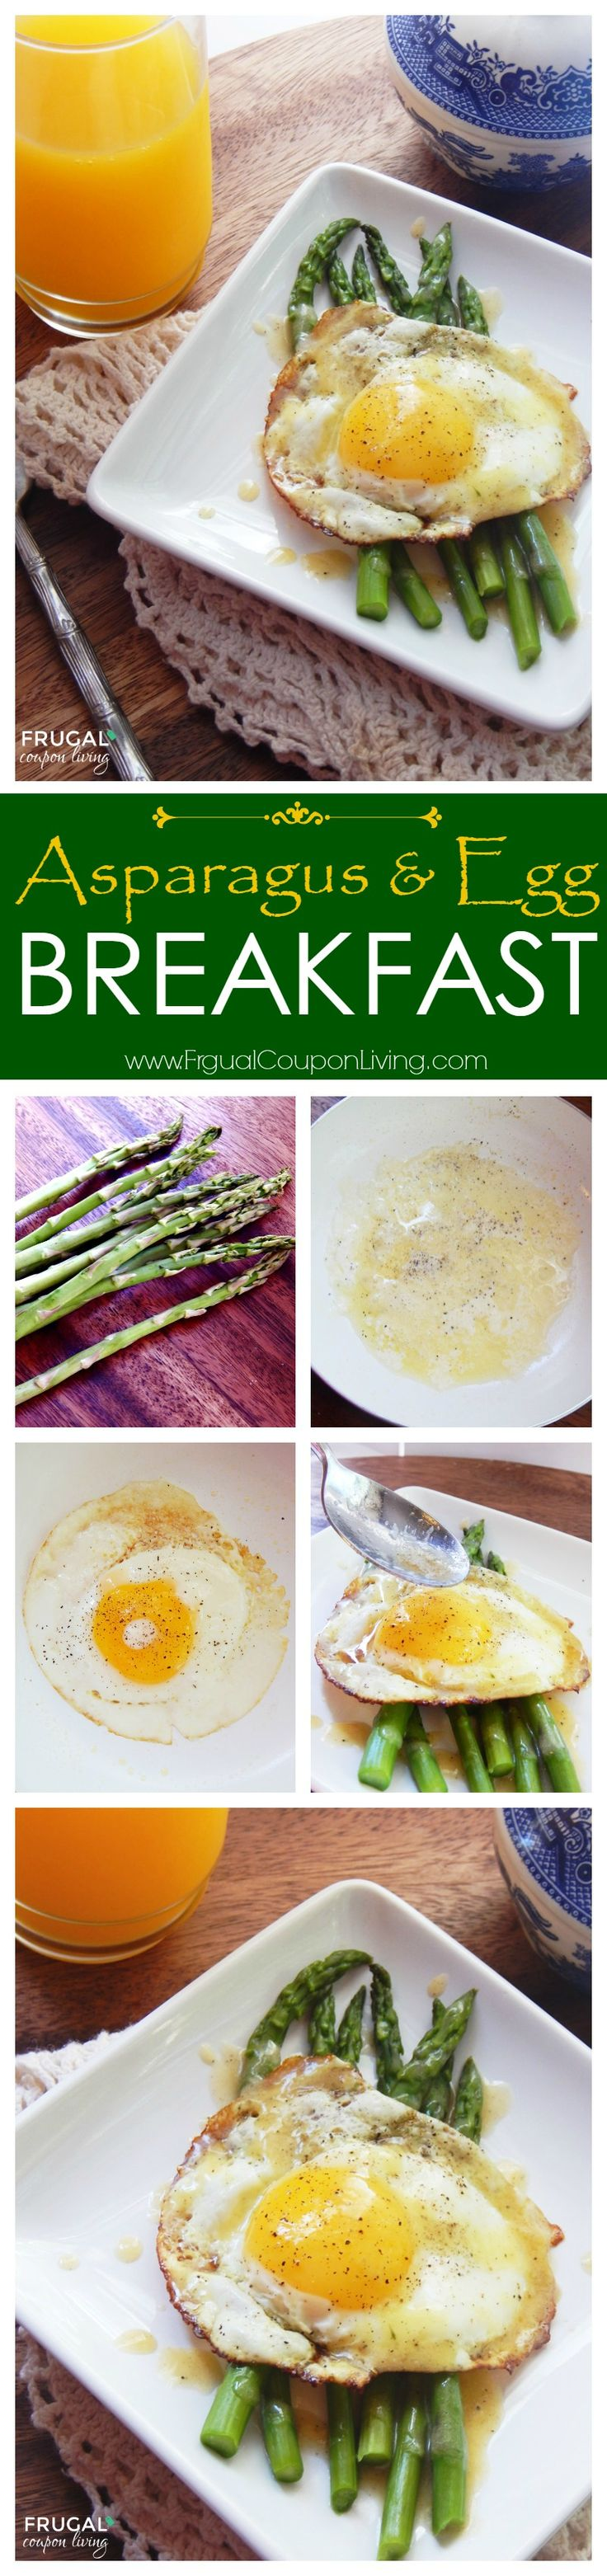 Asparagus & Egg Breakfast - healthy morning breakfast idea - paleo, gluten free, no carbs. Recipe on Frugal Coupon Living.